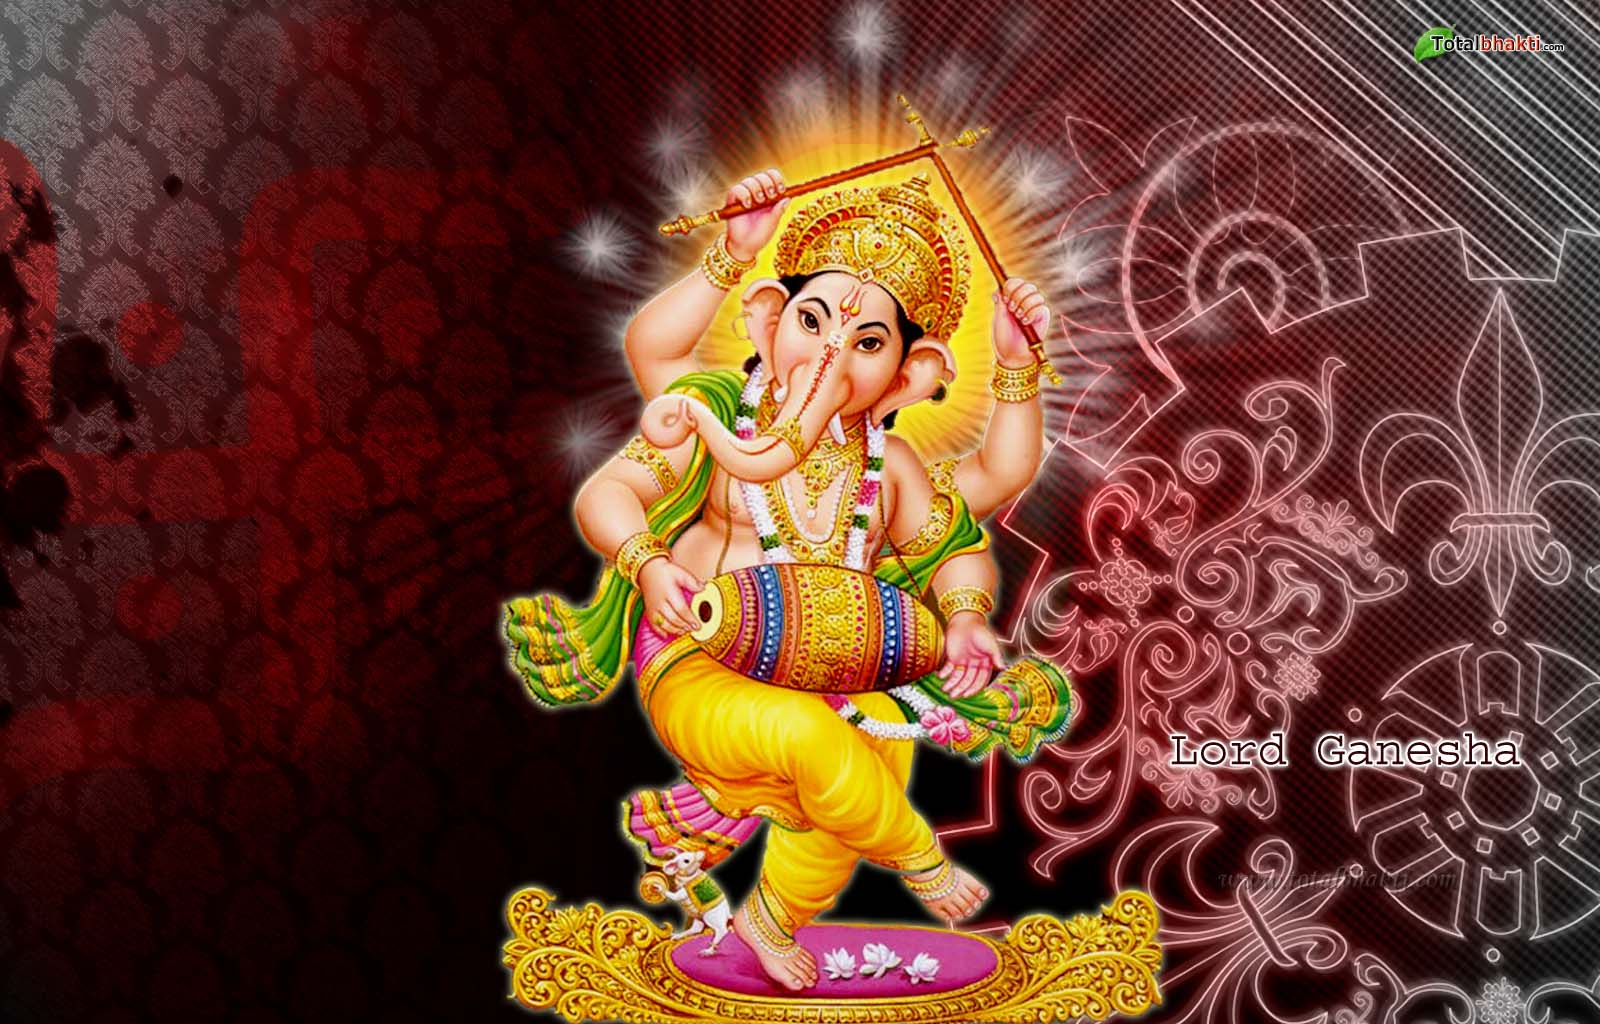 lord-ganesha-wallpapers-ganesh-vinayar-chathurthi (41)